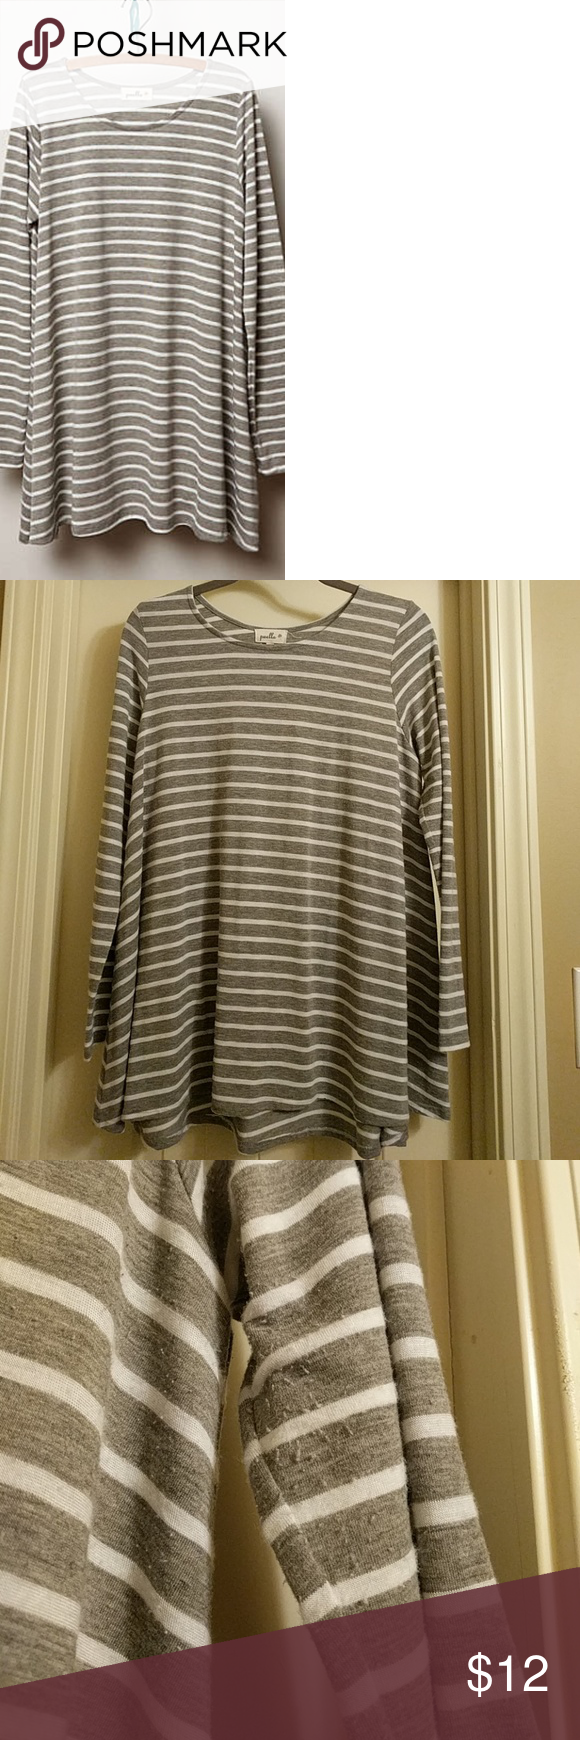 4e7f8015b3d Anthropologie Puella Top Anthropologie Puella Darcy Swing Tunic. Size  small, but fit me as